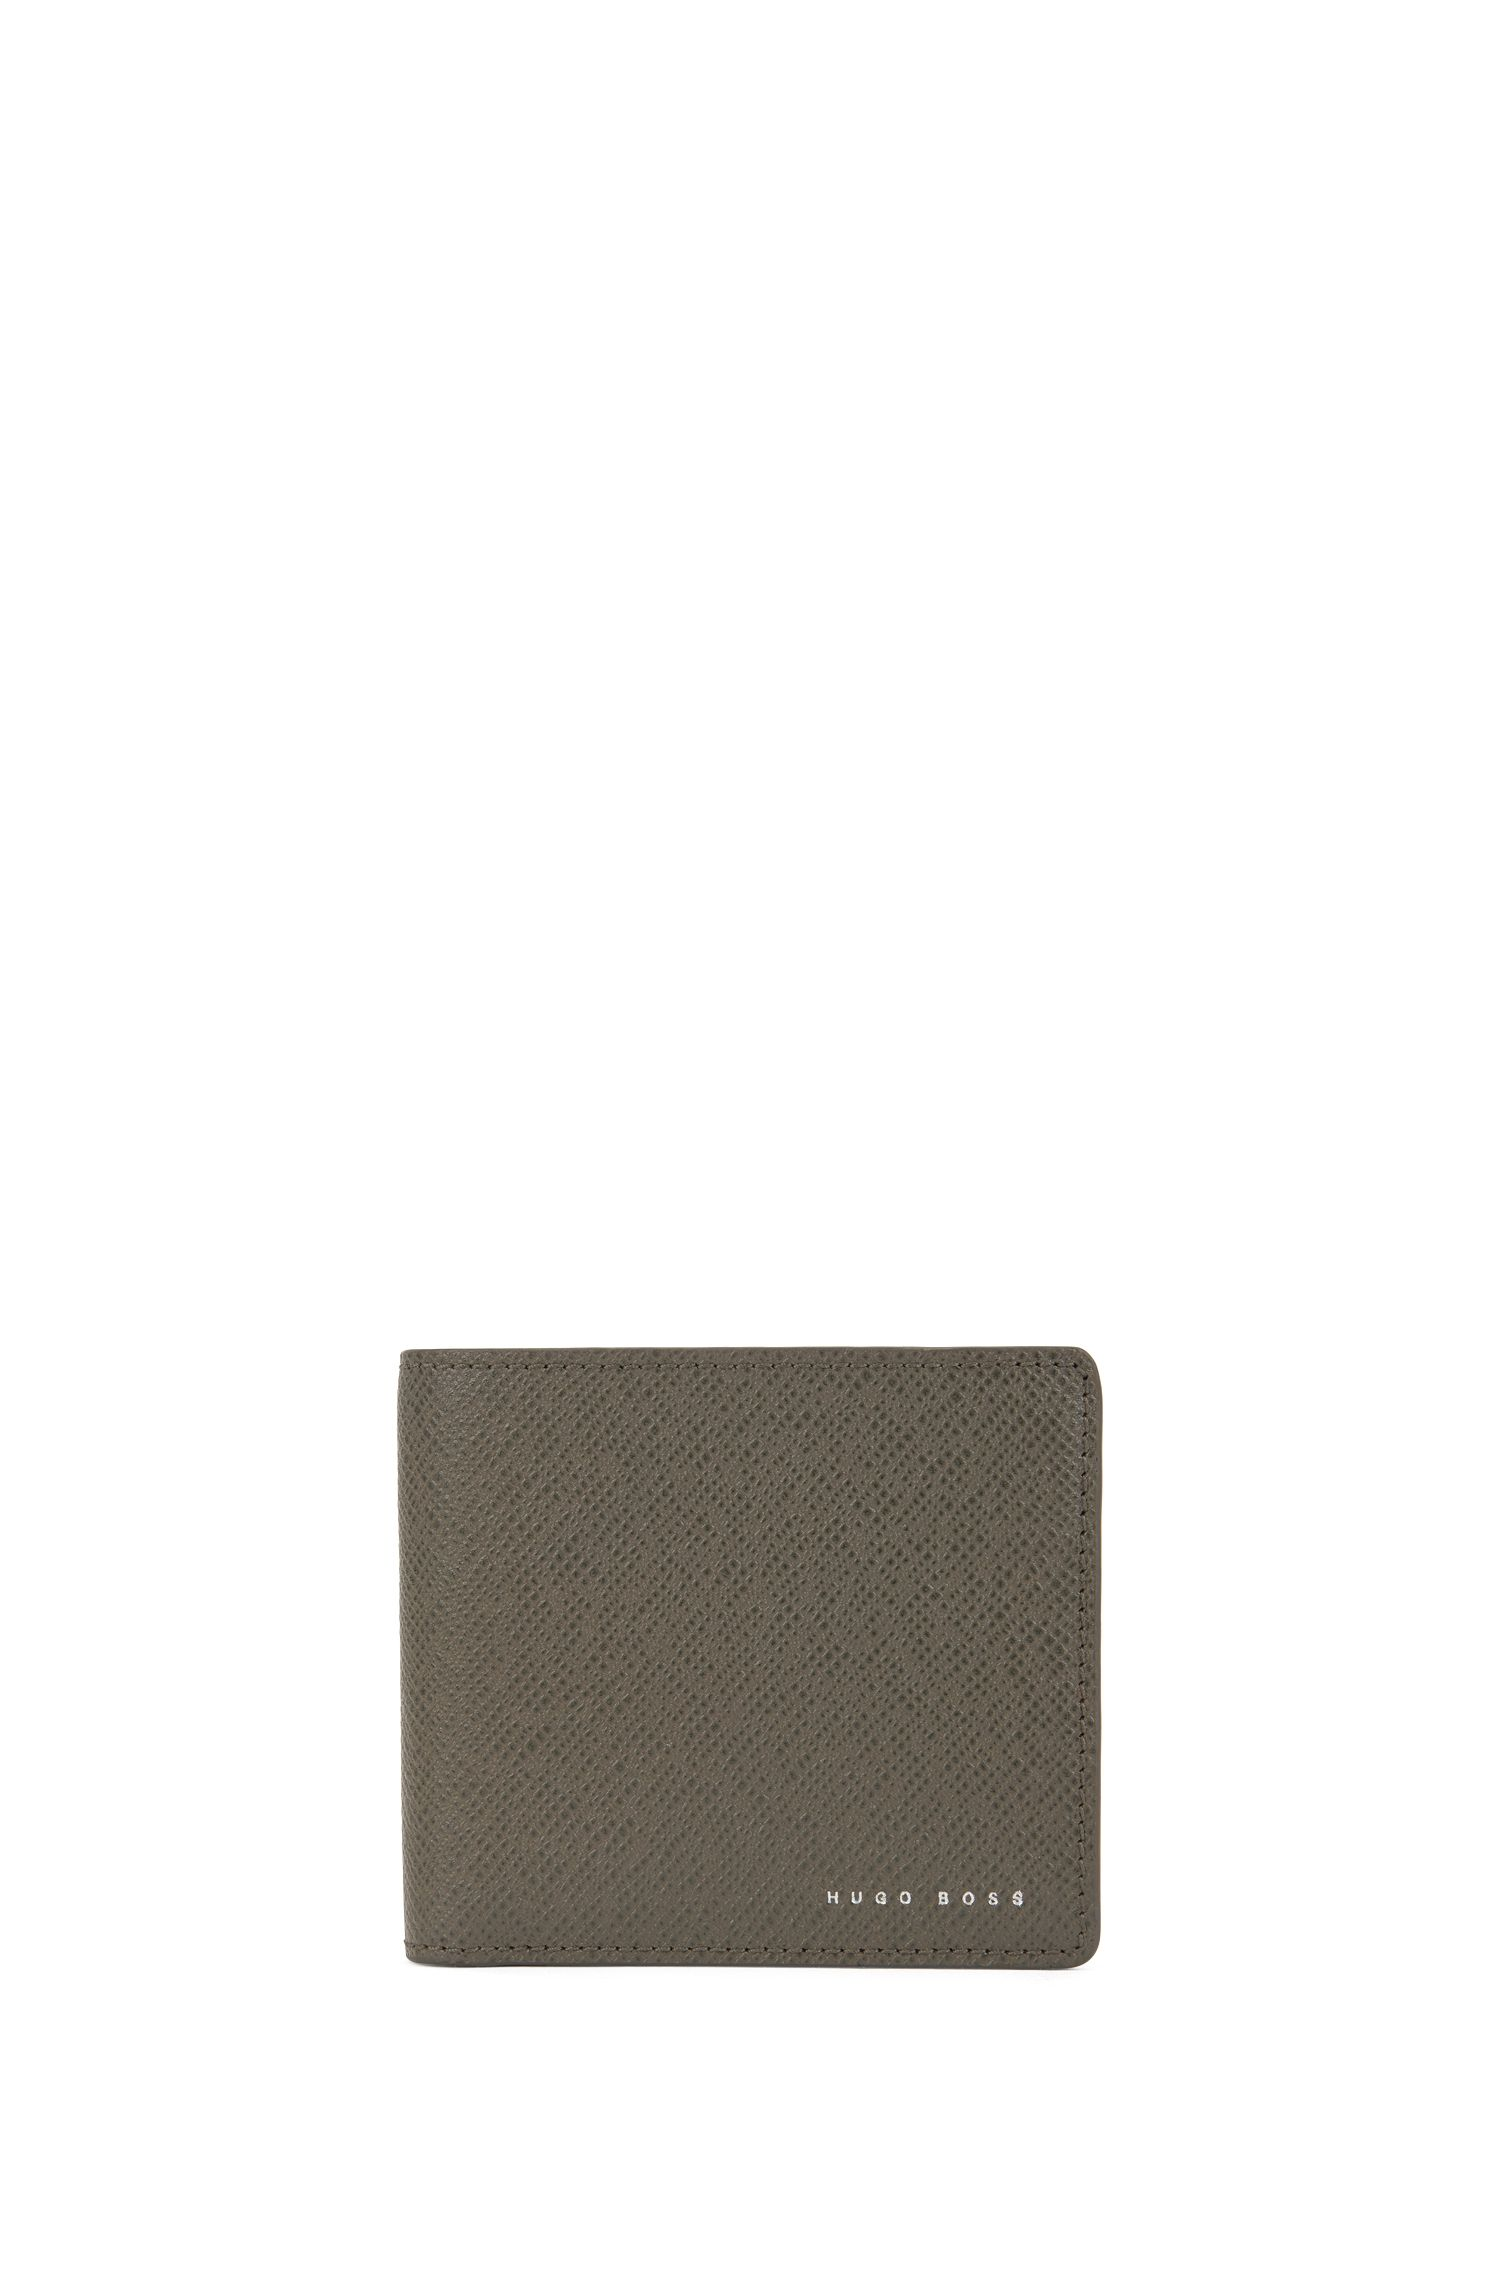 Signature Collection leather folding wallet with 8 card slots